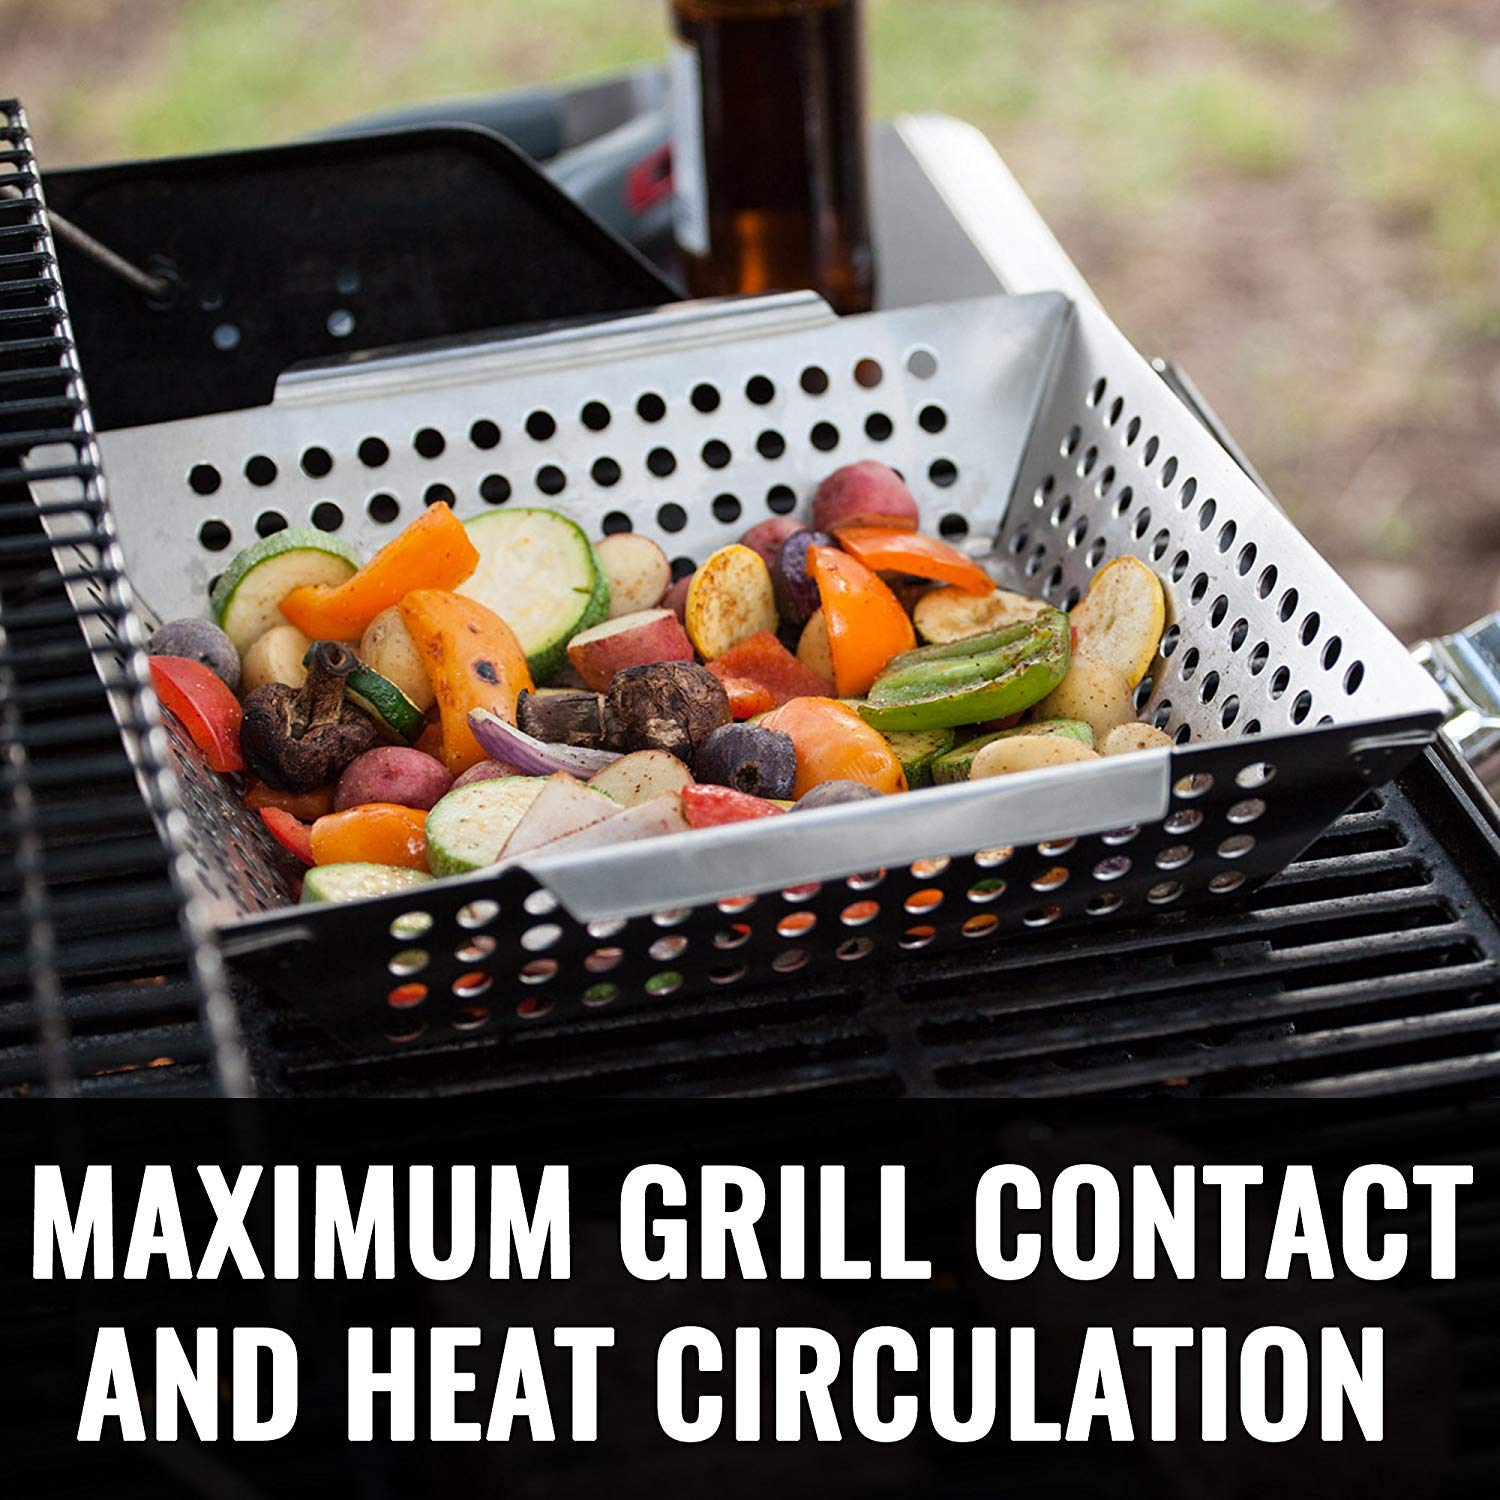 Grillaholics Grill Basket - Large Grilling Basket for More Vegetables - Heavy Duty Stainless Steel Grilling Accessories Built to Last - Perfect Vegetable Grill Basket for All Grills and Veggies by Grillaholics (Image #5)